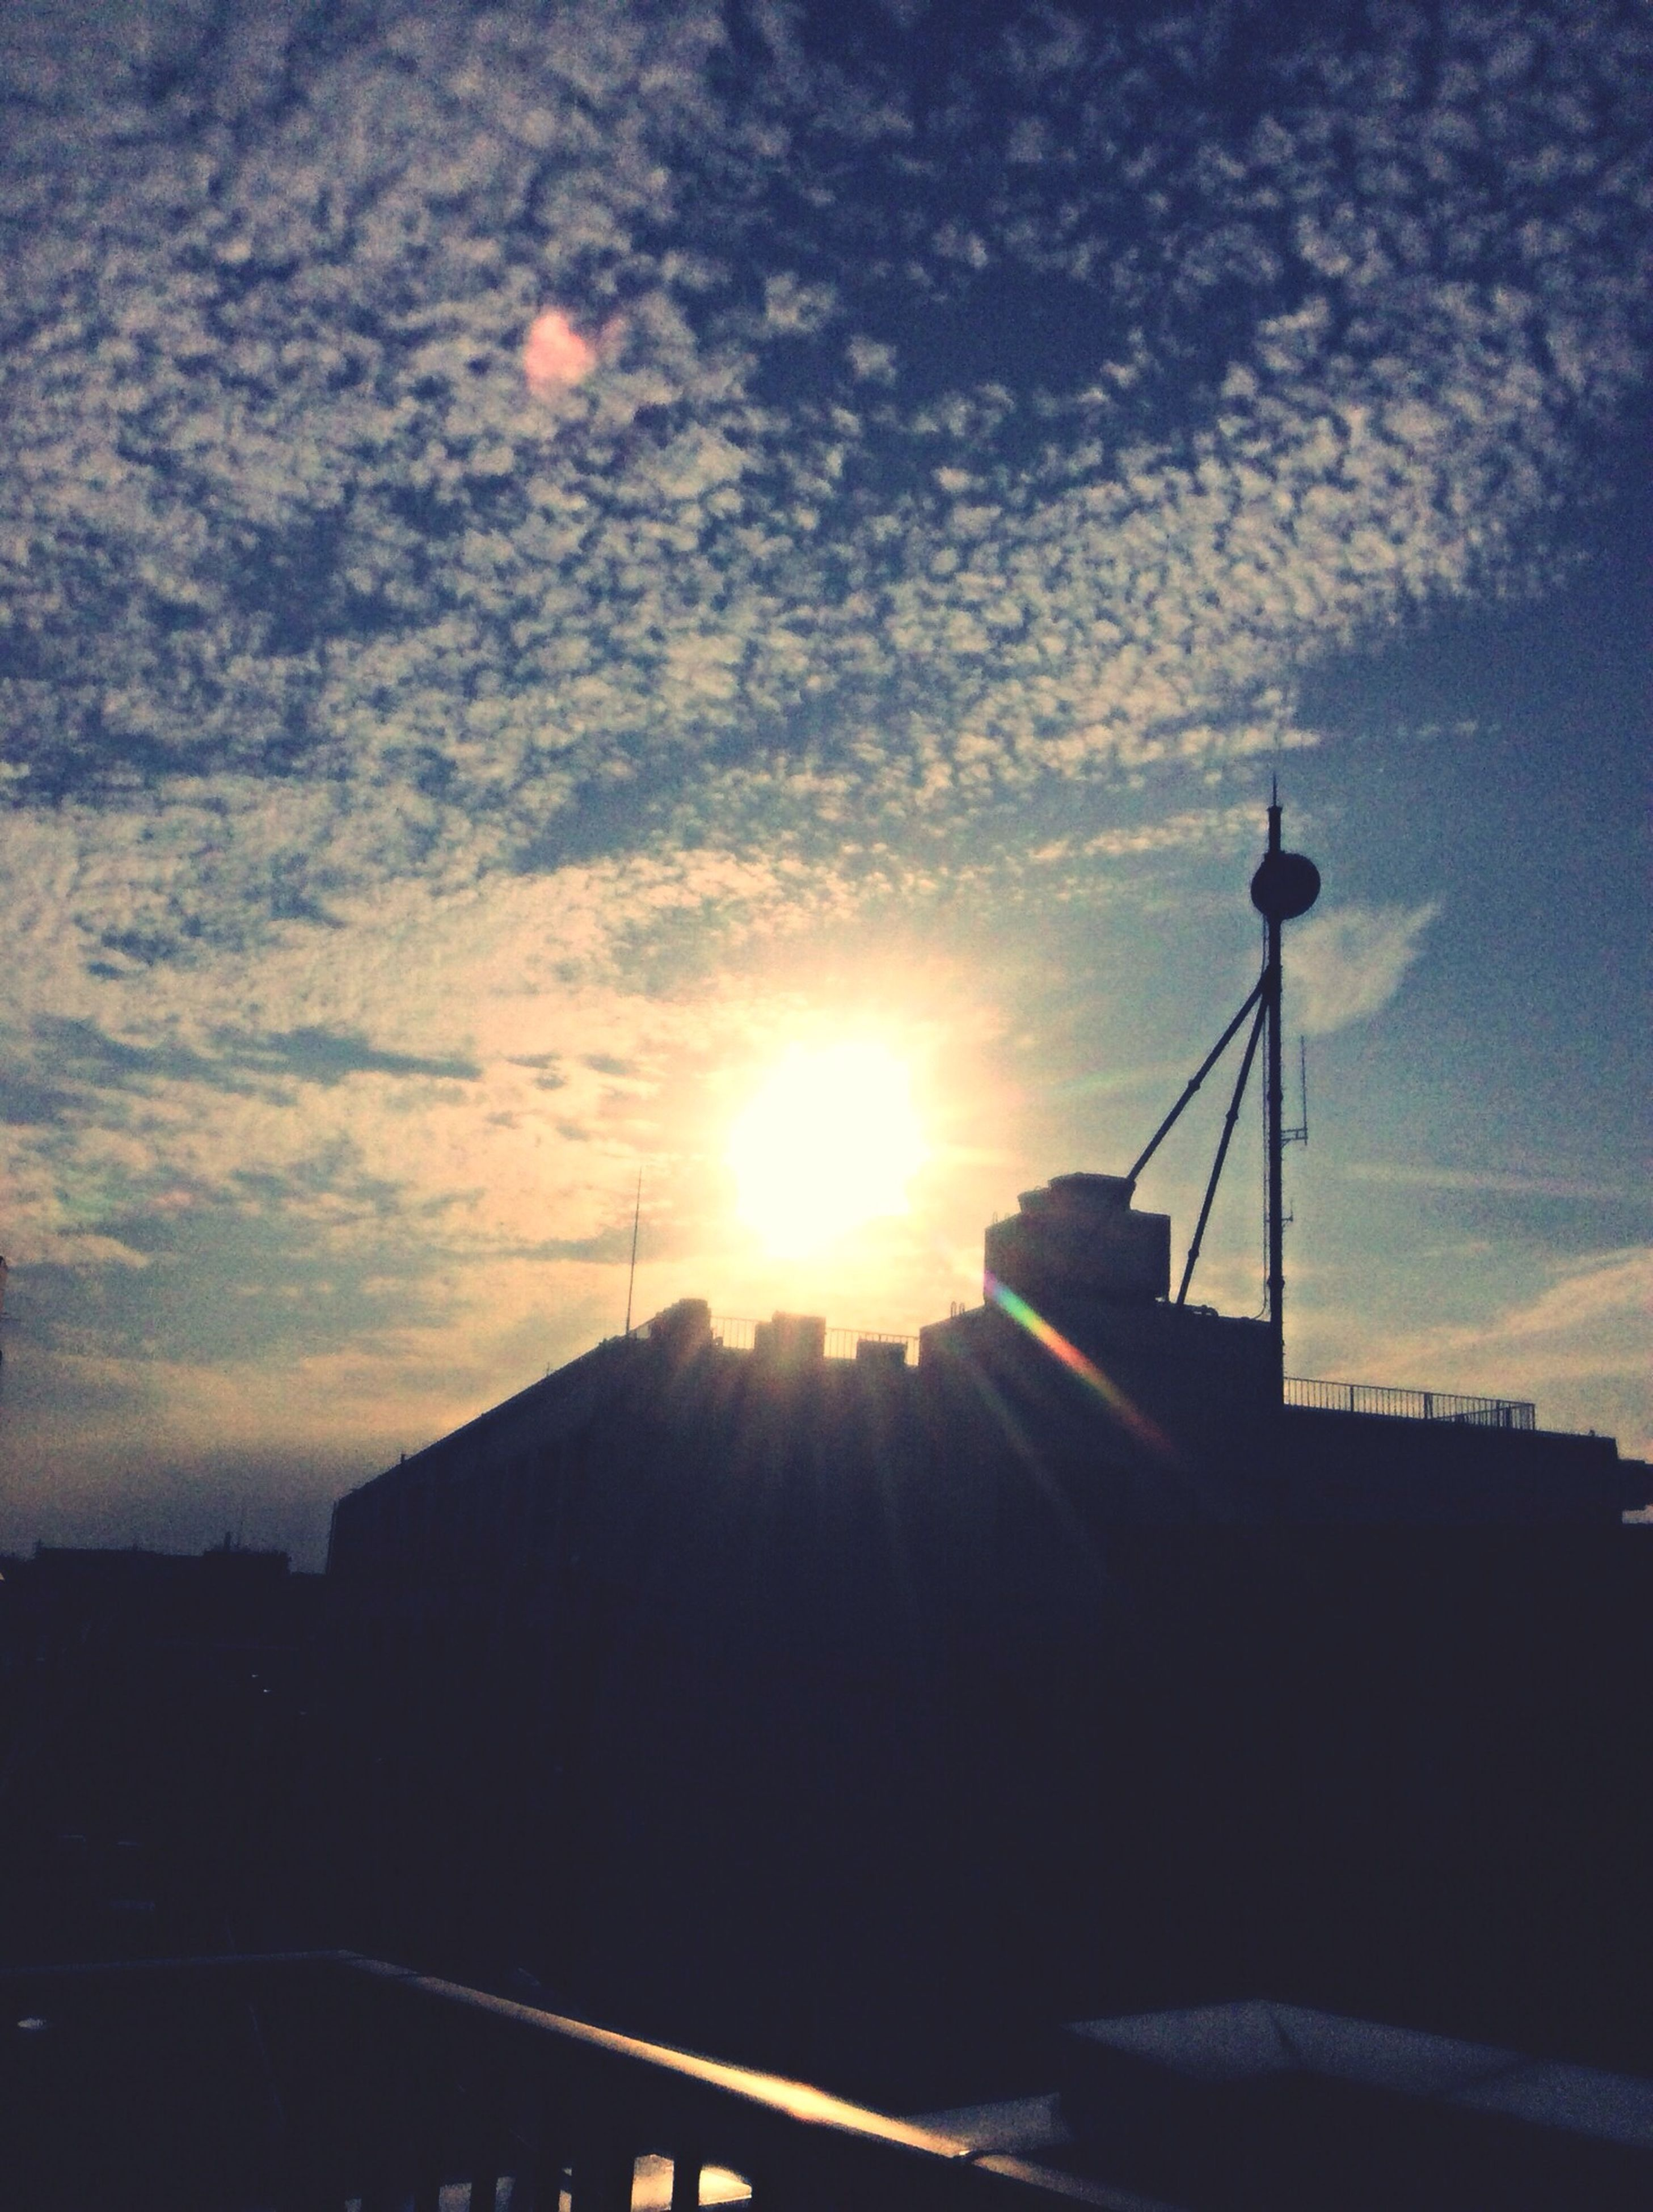 sky, silhouette, sun, cloud - sky, sunset, sunbeam, sunlight, low angle view, cloud, street light, cloudy, built structure, lens flare, nature, transportation, architecture, outdoors, beauty in nature, scenics, building exterior